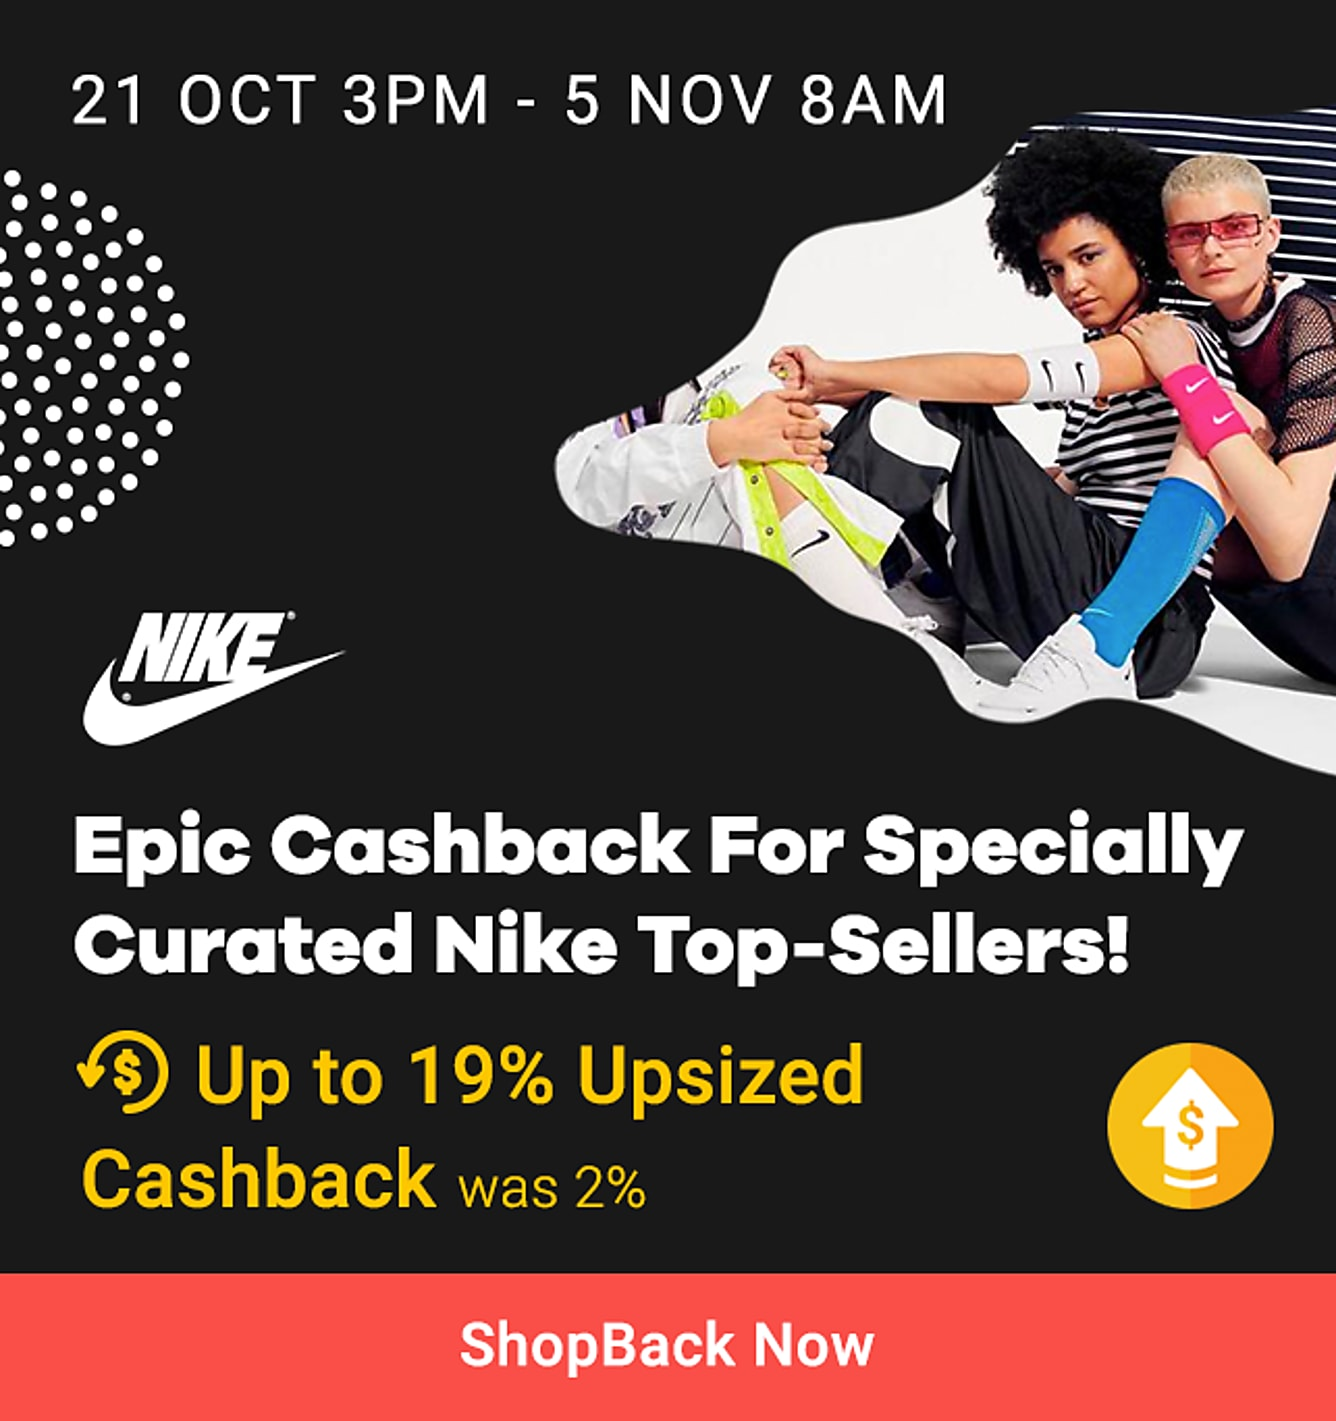 Nike - 21 Oct 3pm to 5 Nov 8am SGT: 19% Epic Cashback (was 2%) on specially curated Nike top-sellers exclusive/for ShopBack customers only here: https://www.nike.com/sg/w/shopback-47bcy